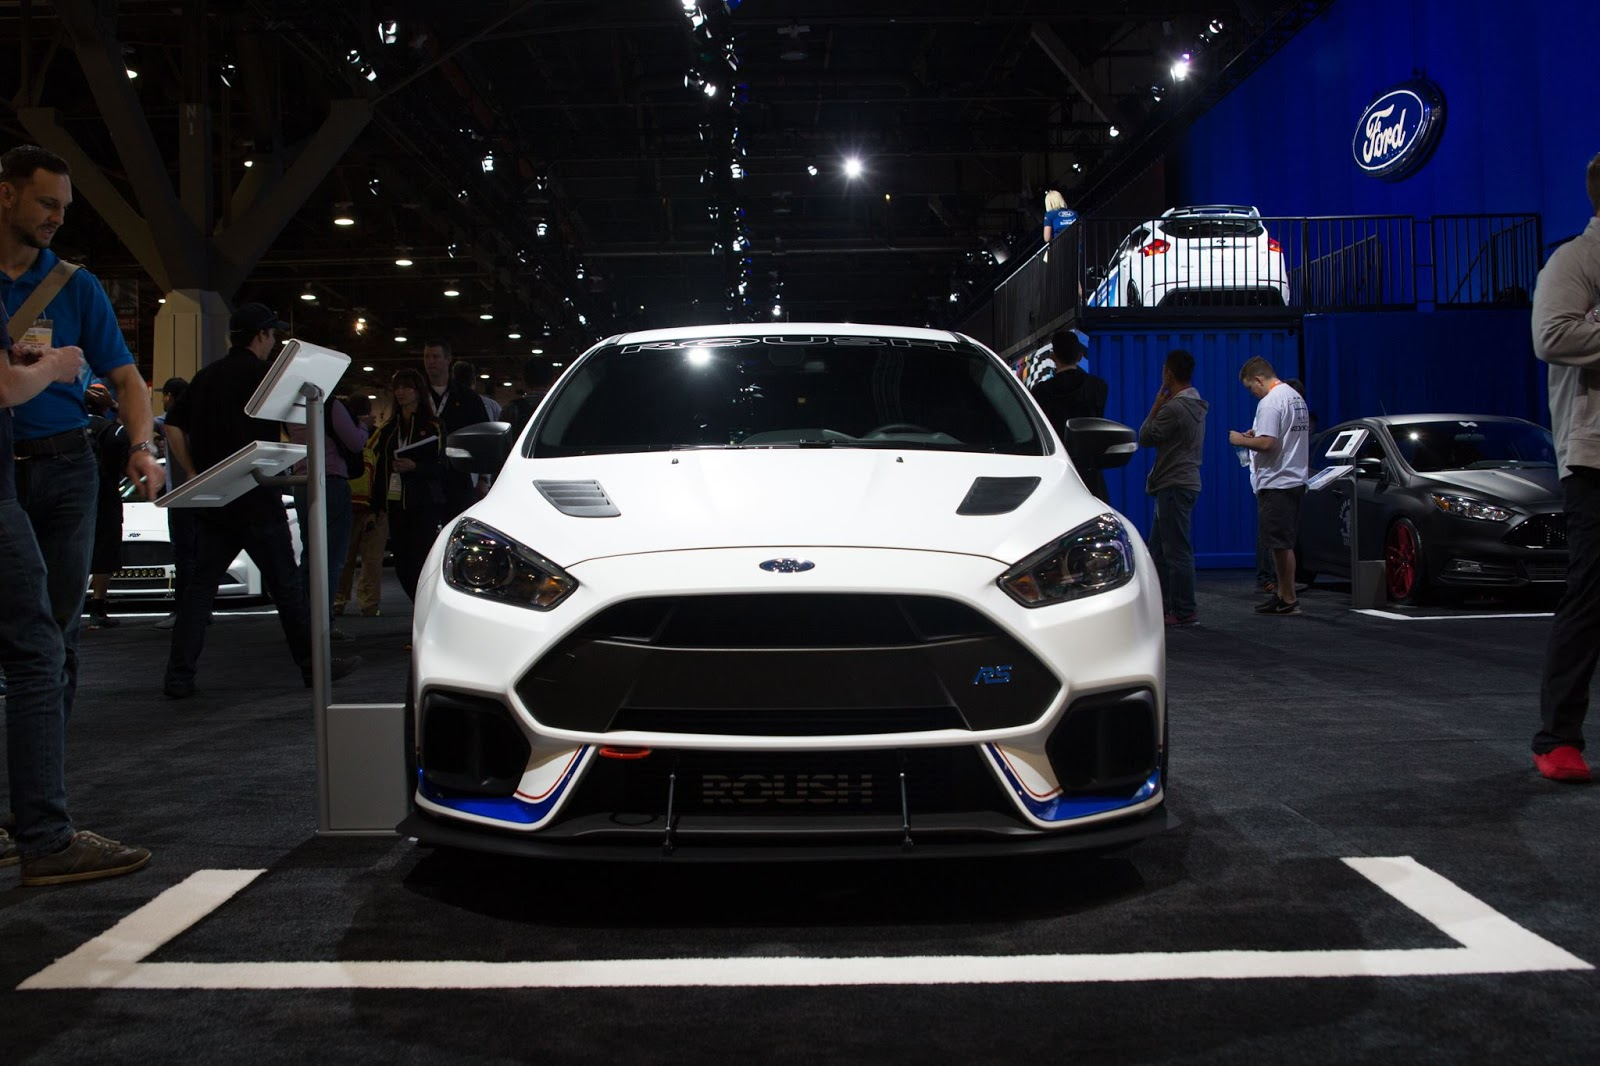 roush 39 s 500 hp ford focus rs turned heads at sema carscoops. Black Bedroom Furniture Sets. Home Design Ideas